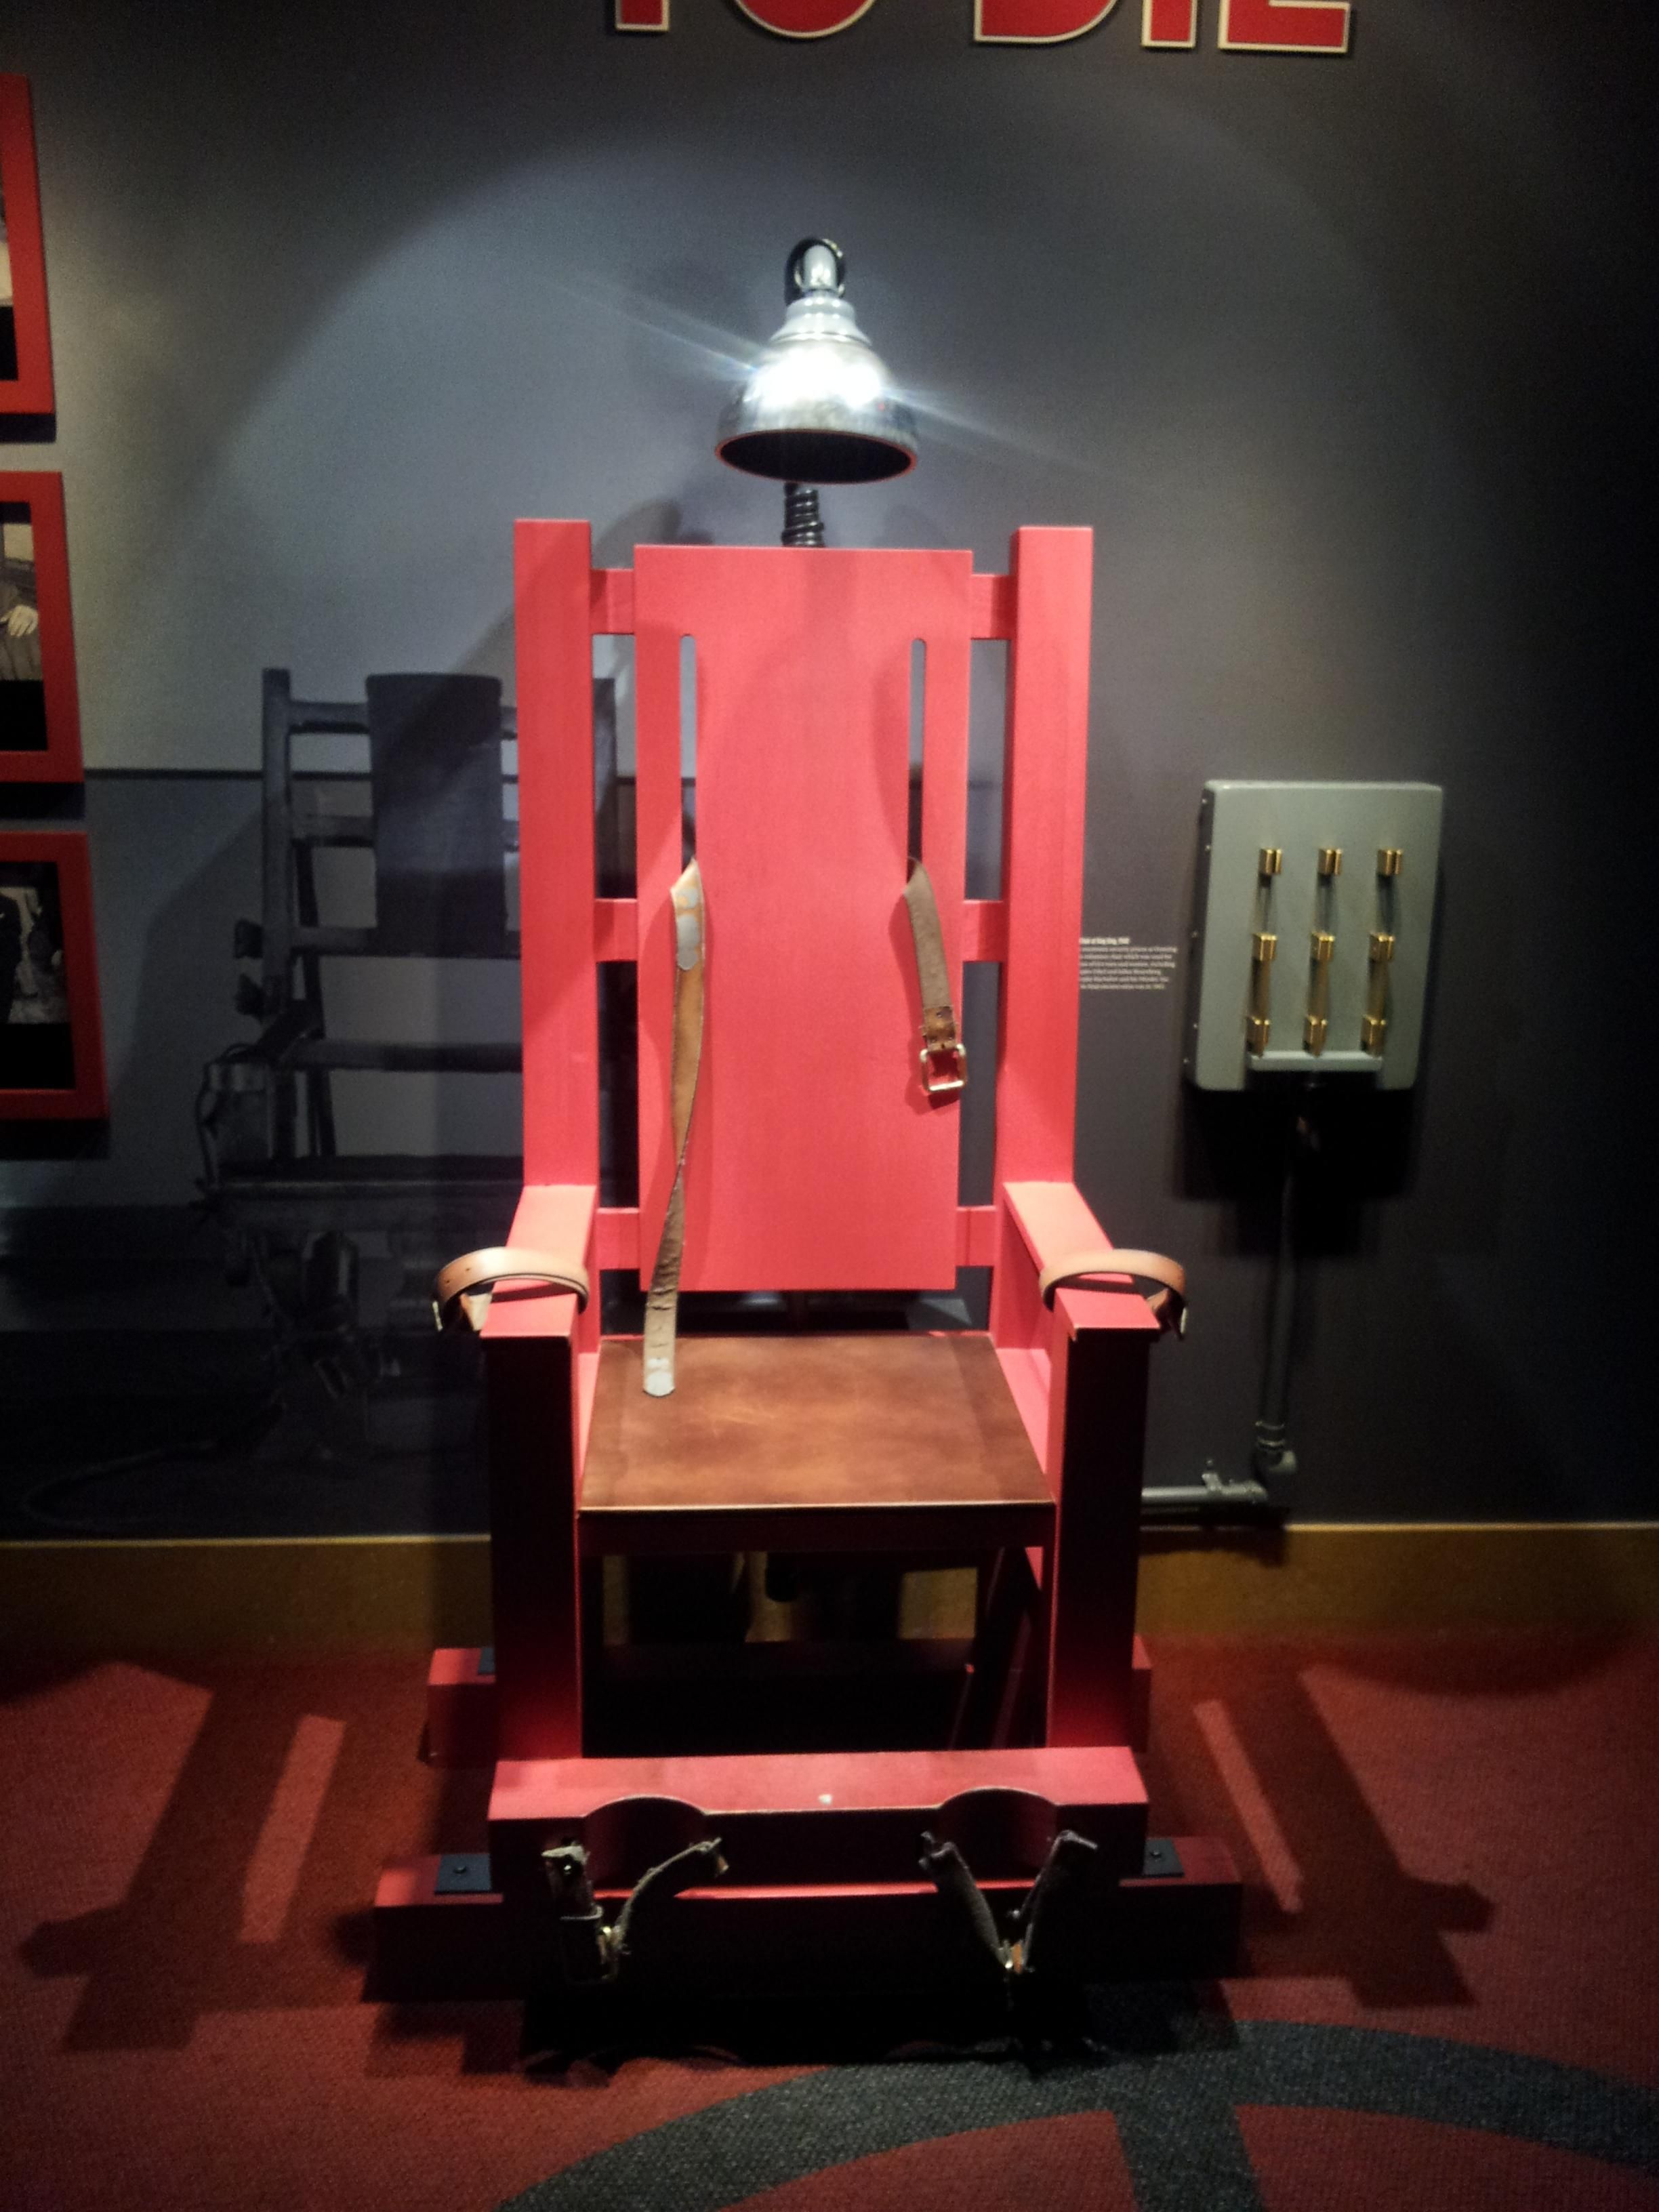 electric chair was invented by round name from sing prison that killed many